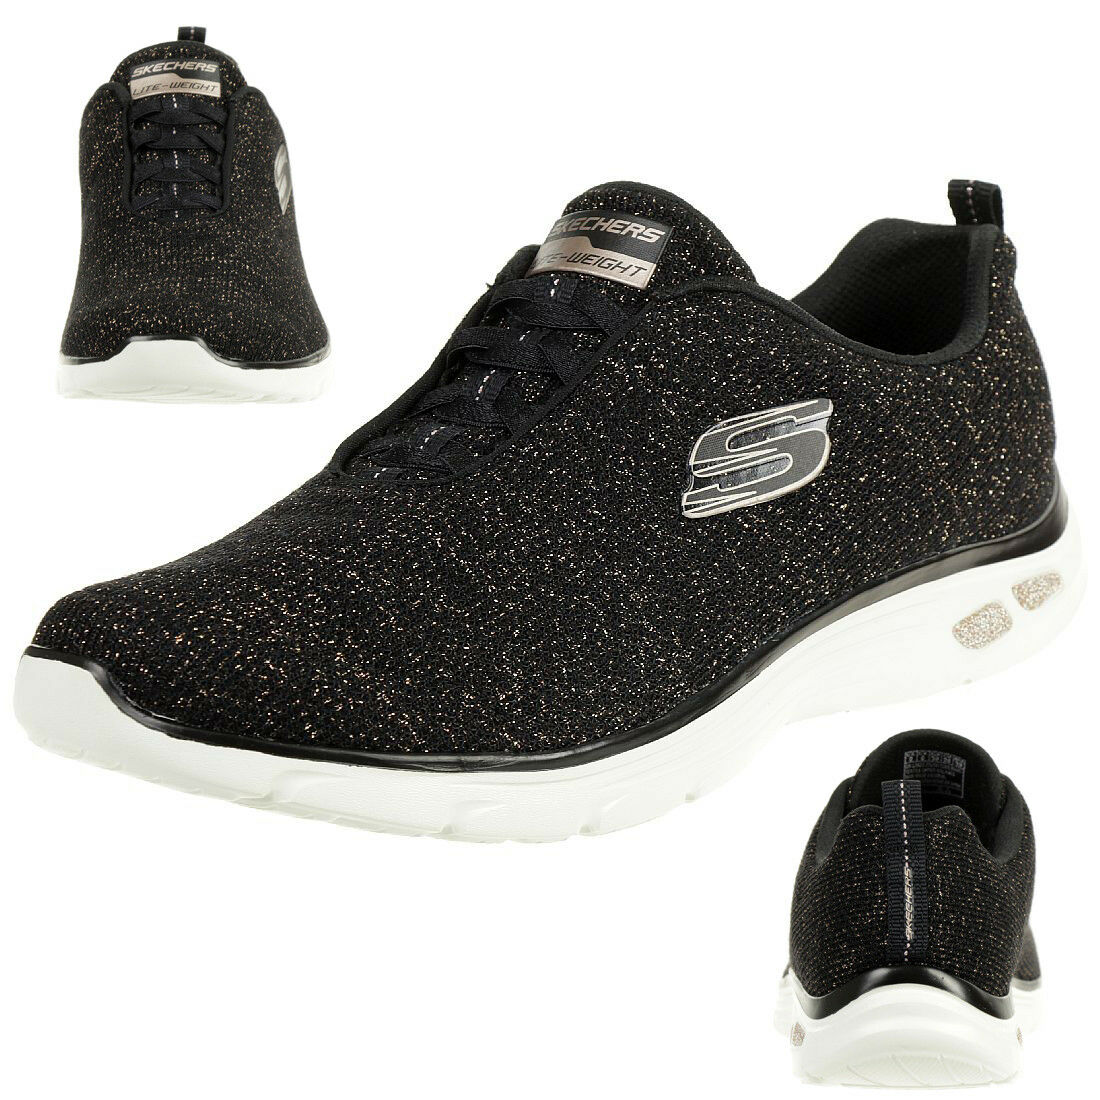 Skechers Relaxed Fit empire d 'lux-Burn Bright femmes Turnchaussures AIR COOLED 12822